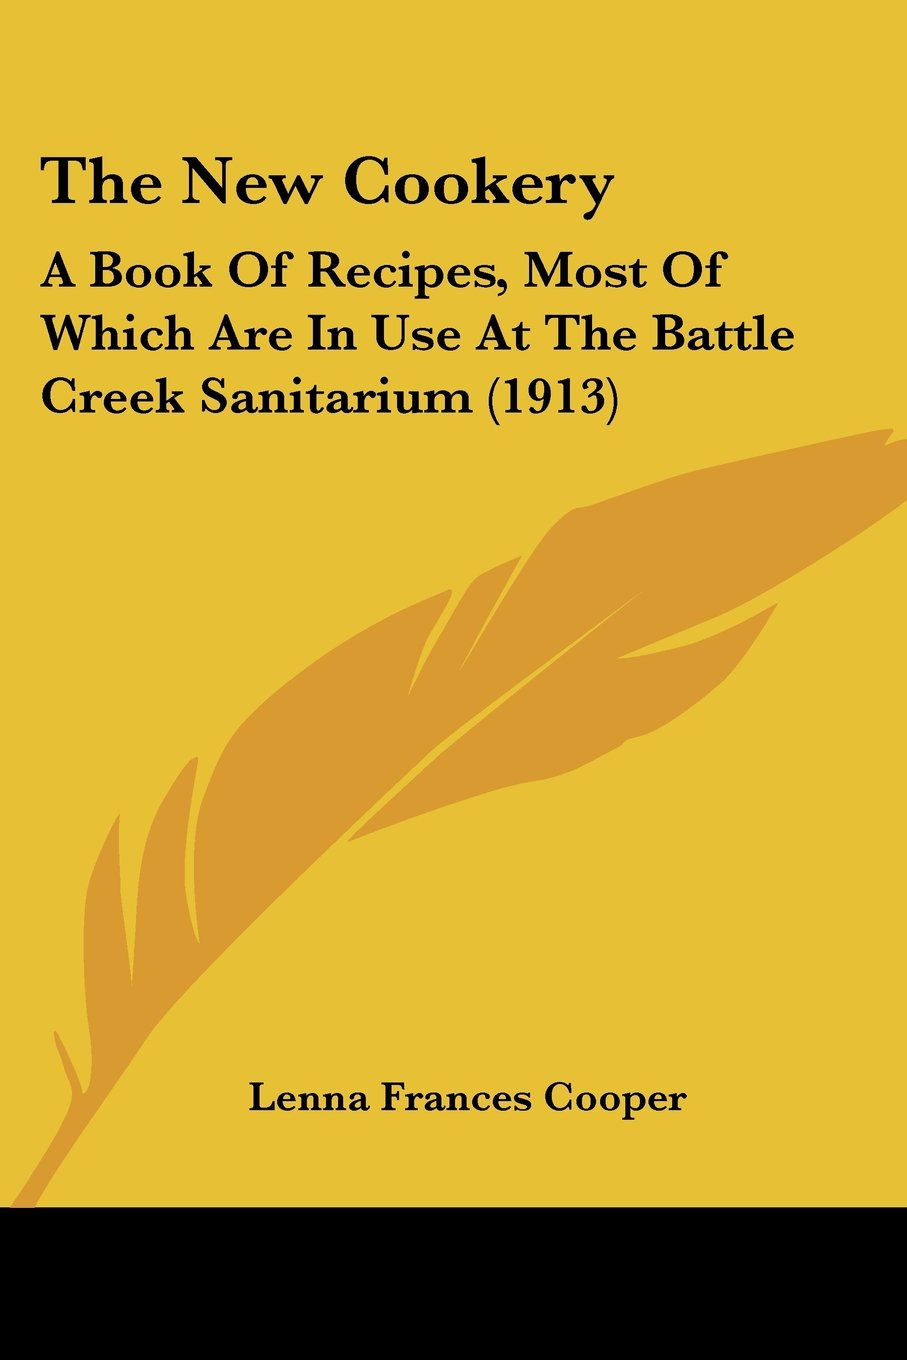 Download The New Cookery: A Book Of Recipes, Most Of Which Are In Use At The Battle Creek Sanitarium (1913) pdf epub